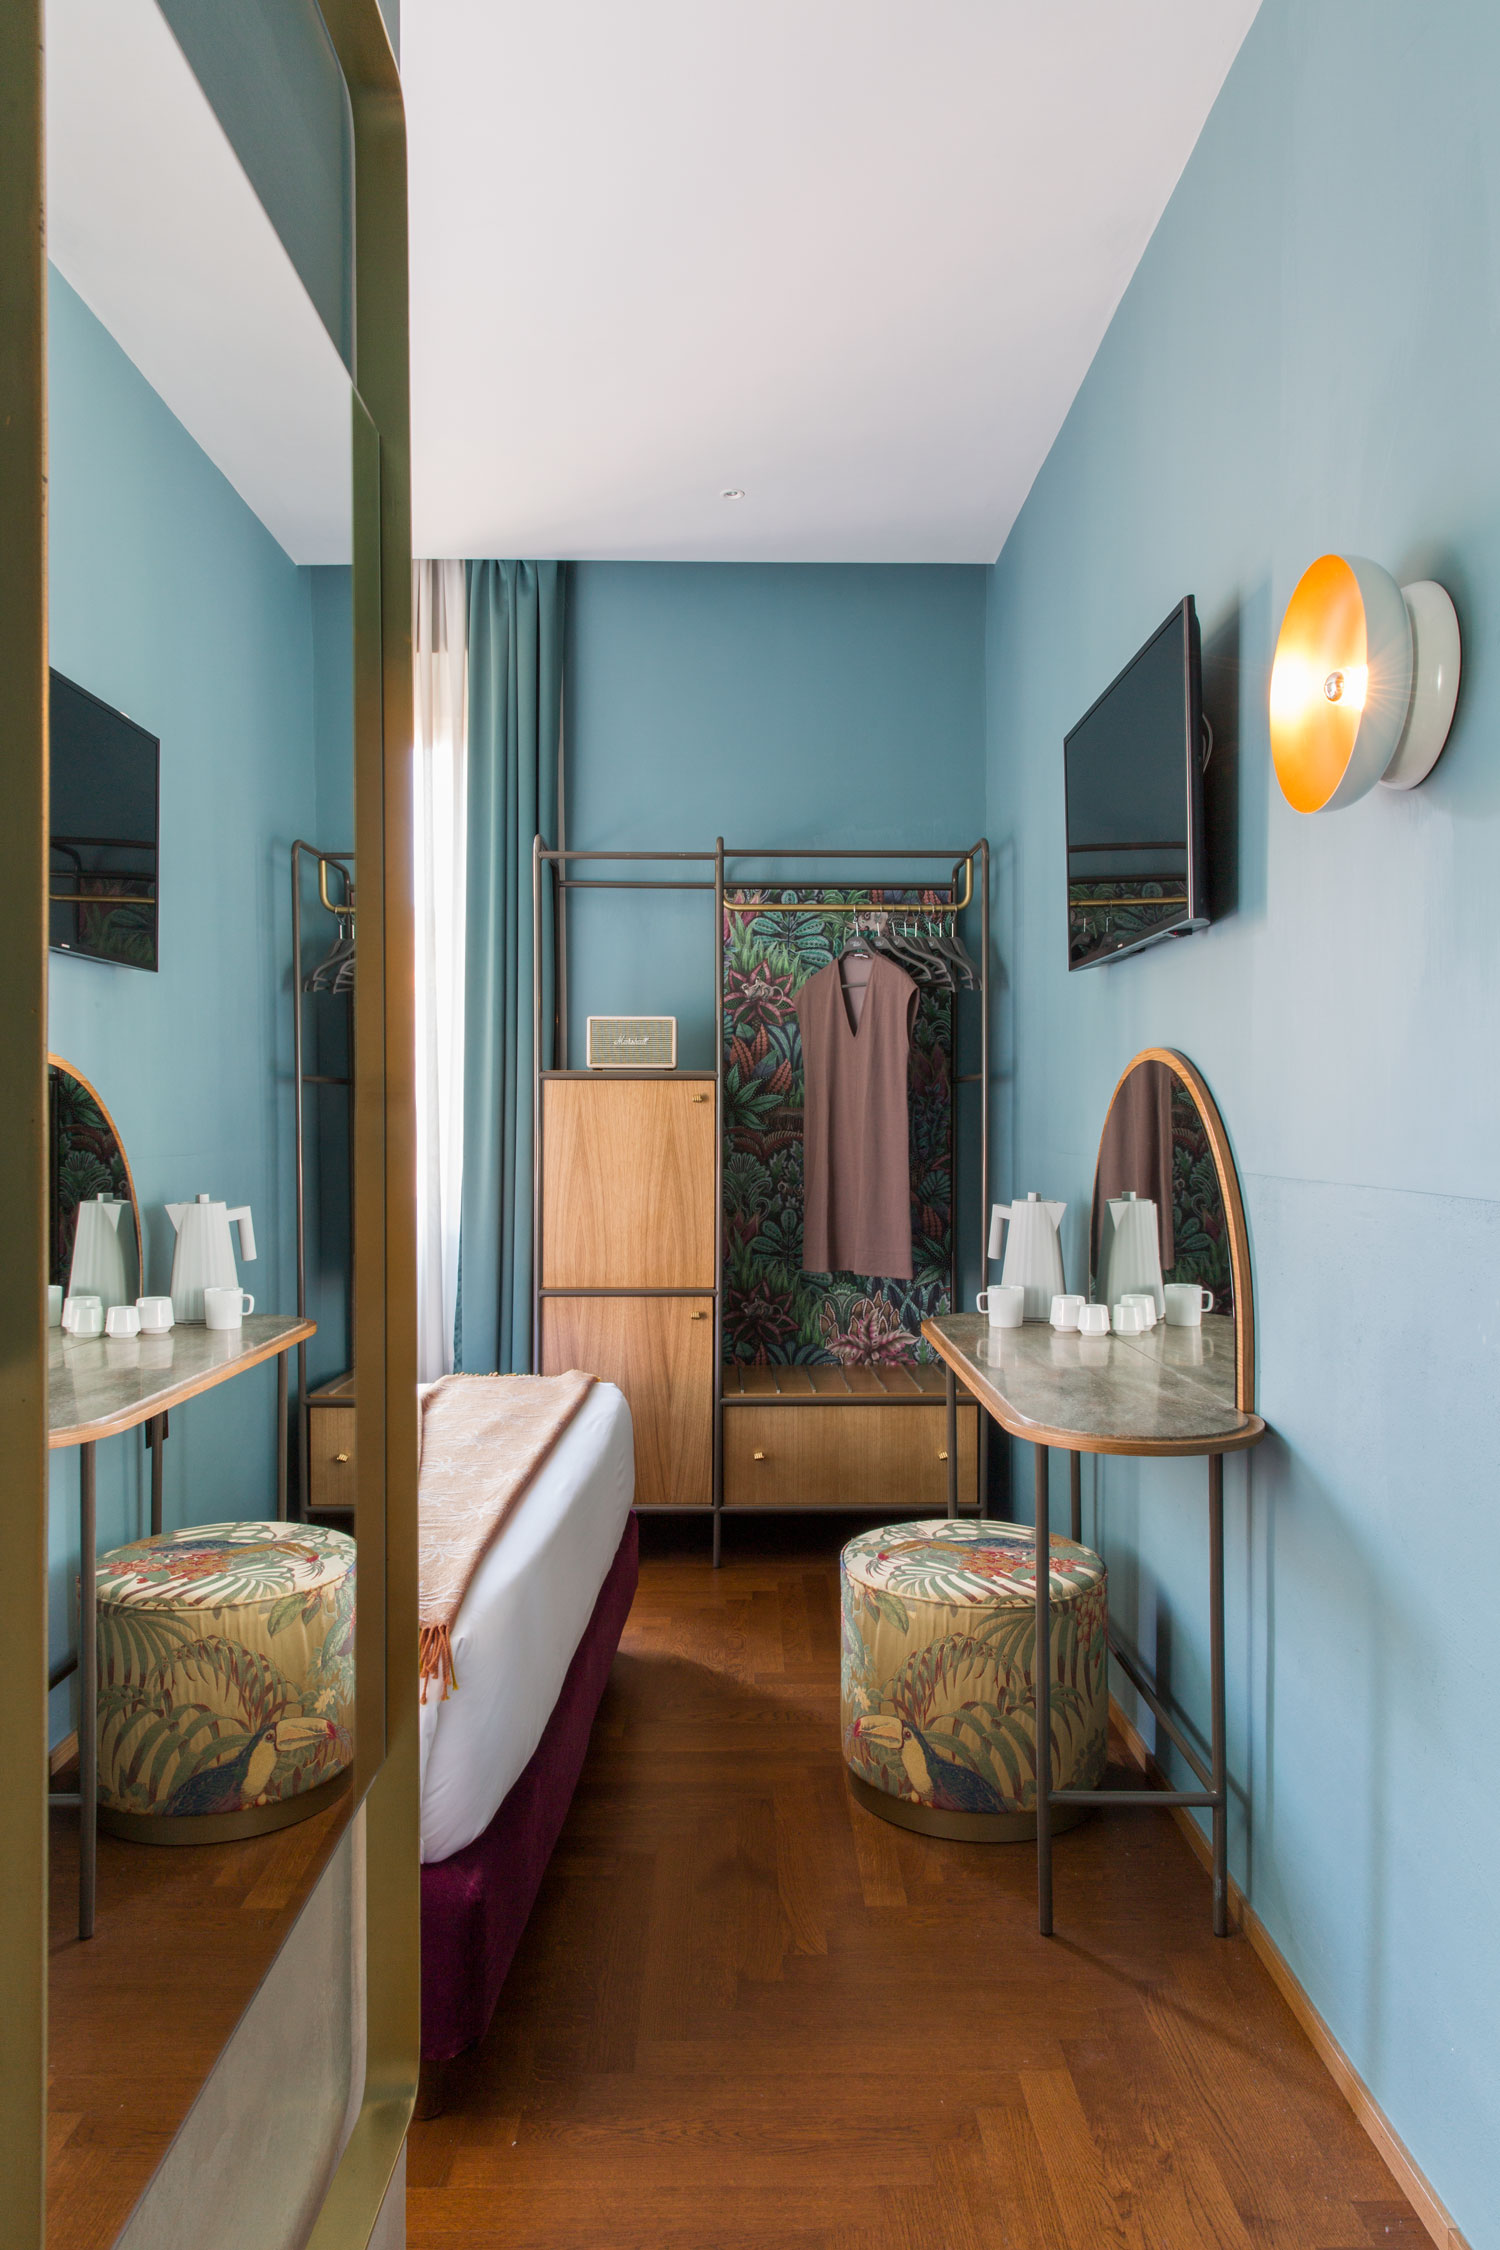 Redefining Hospitality Design With This Vibrant Hotel In Rome - WWW.AUTHENTICINTERIOR.COM design studio & blog